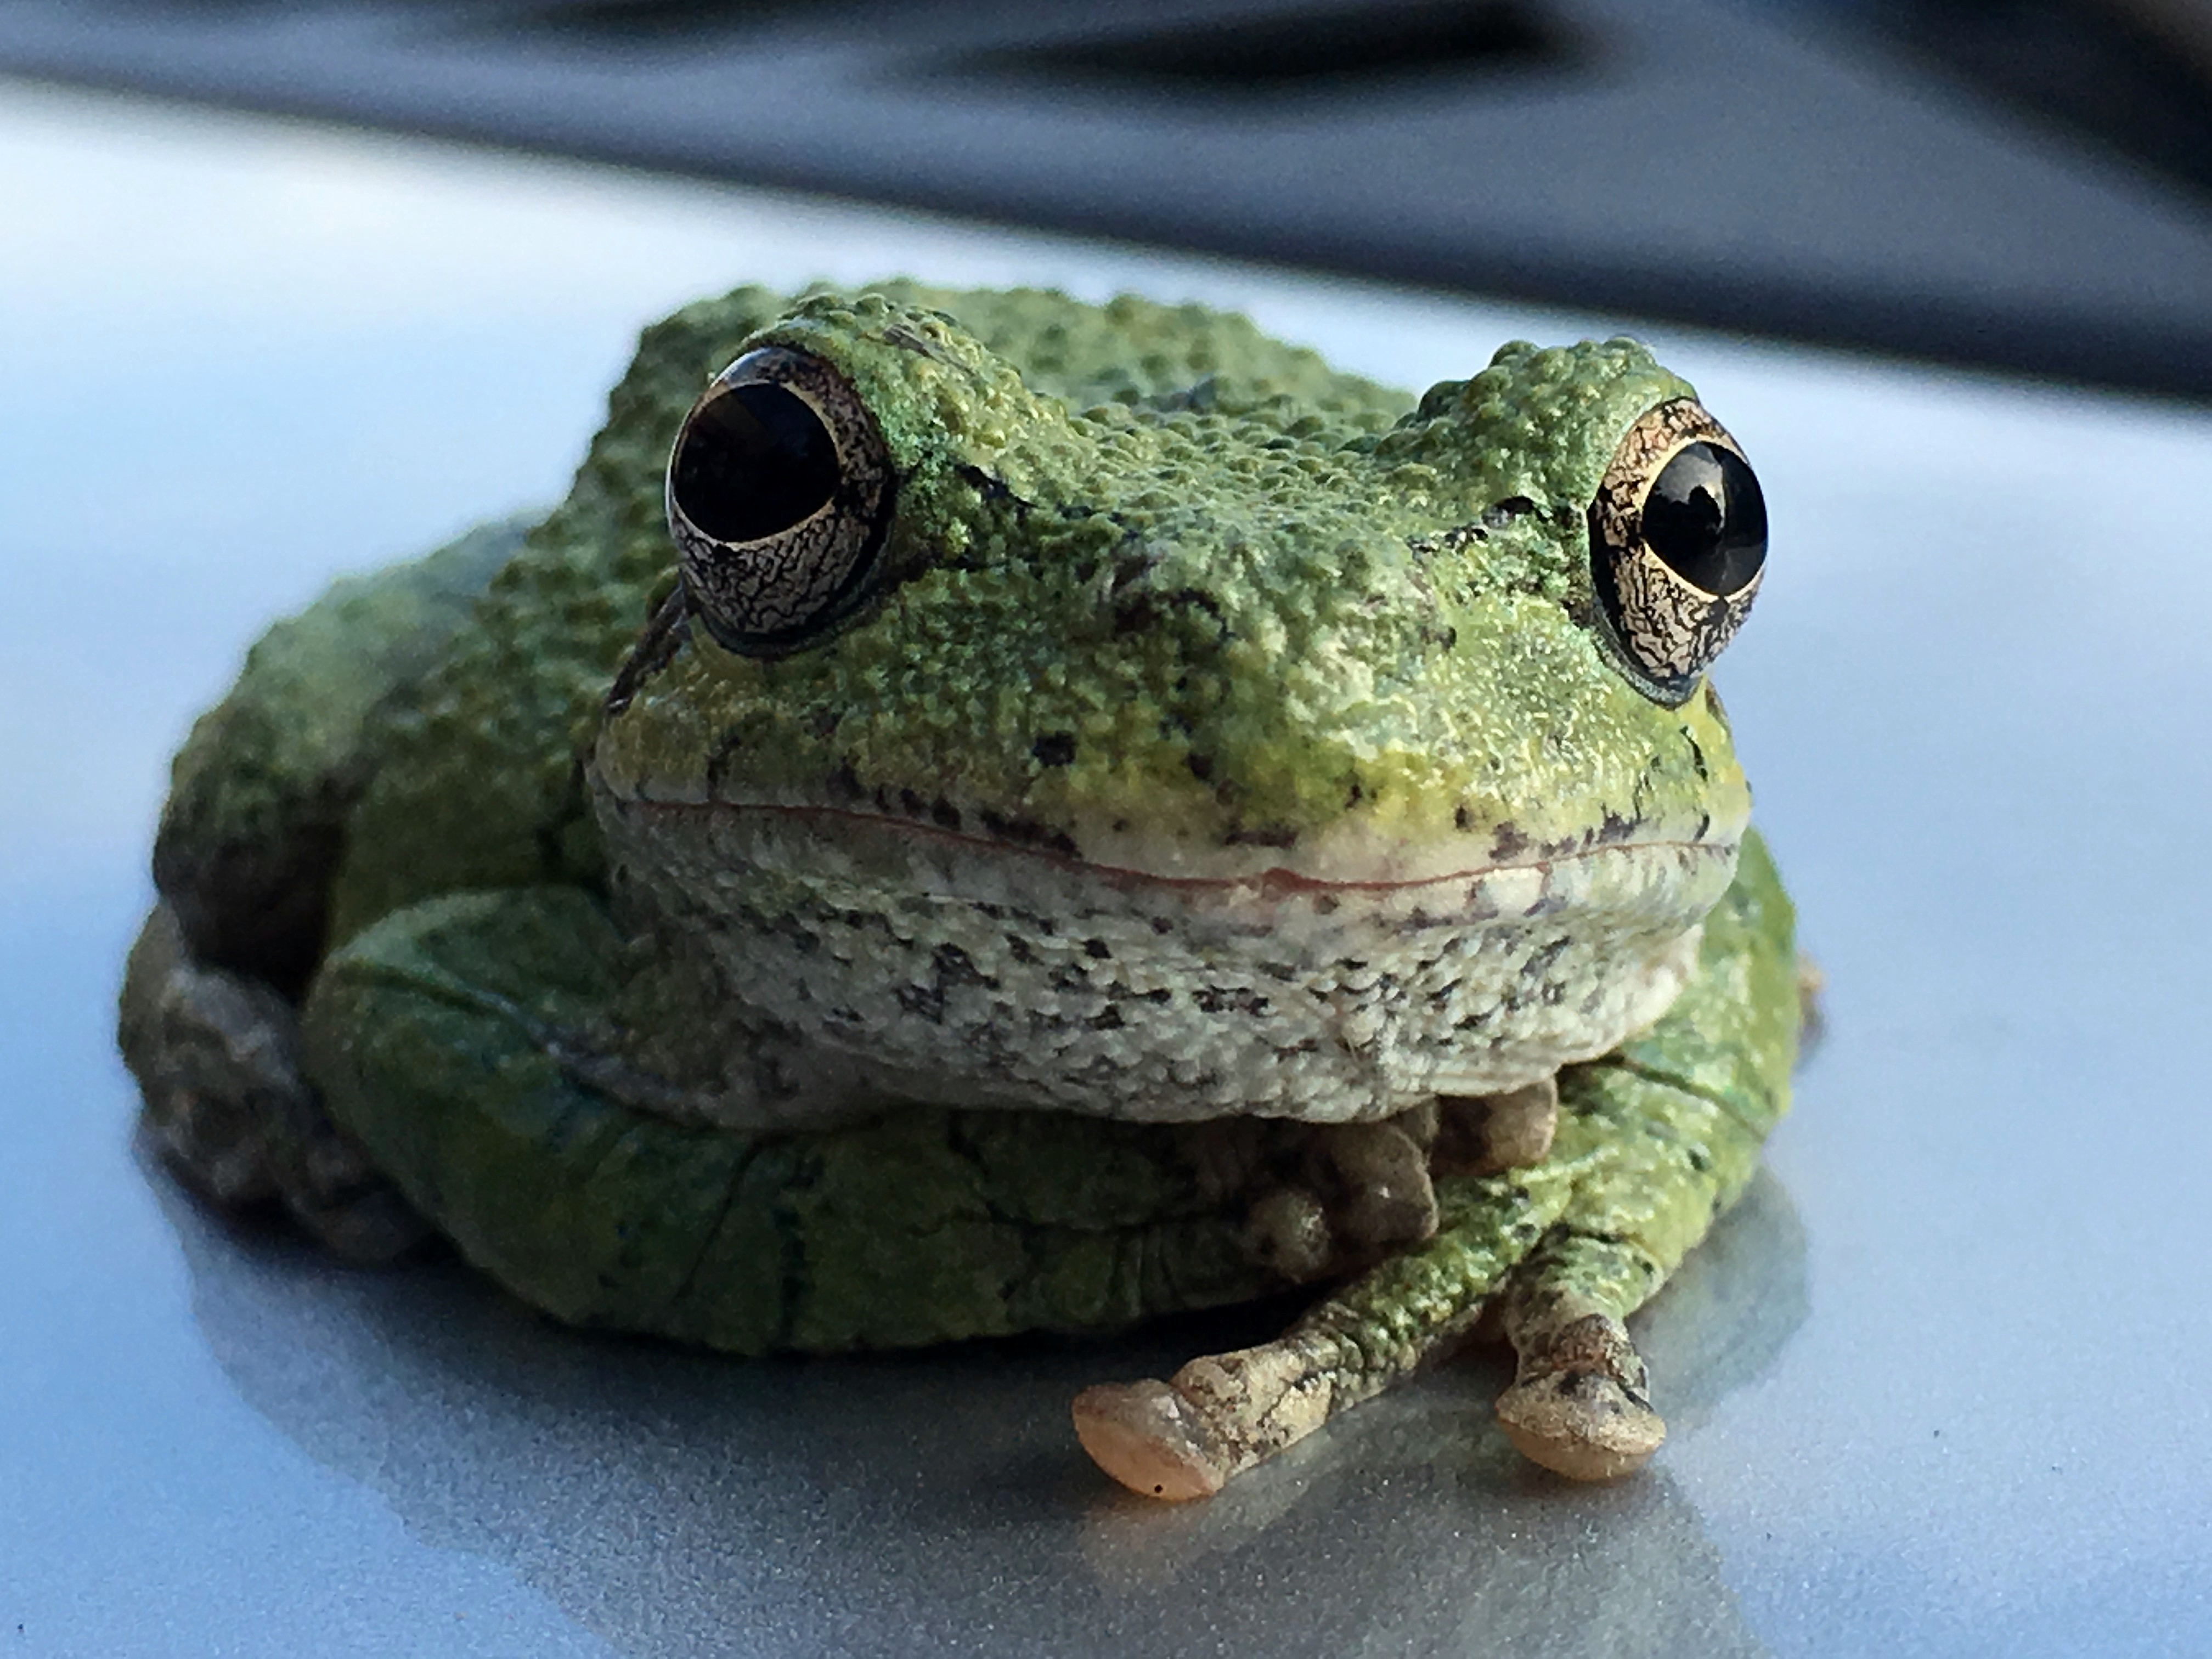 Clarksville to Crofton with a Gray Tree Frog | The Natural History Log